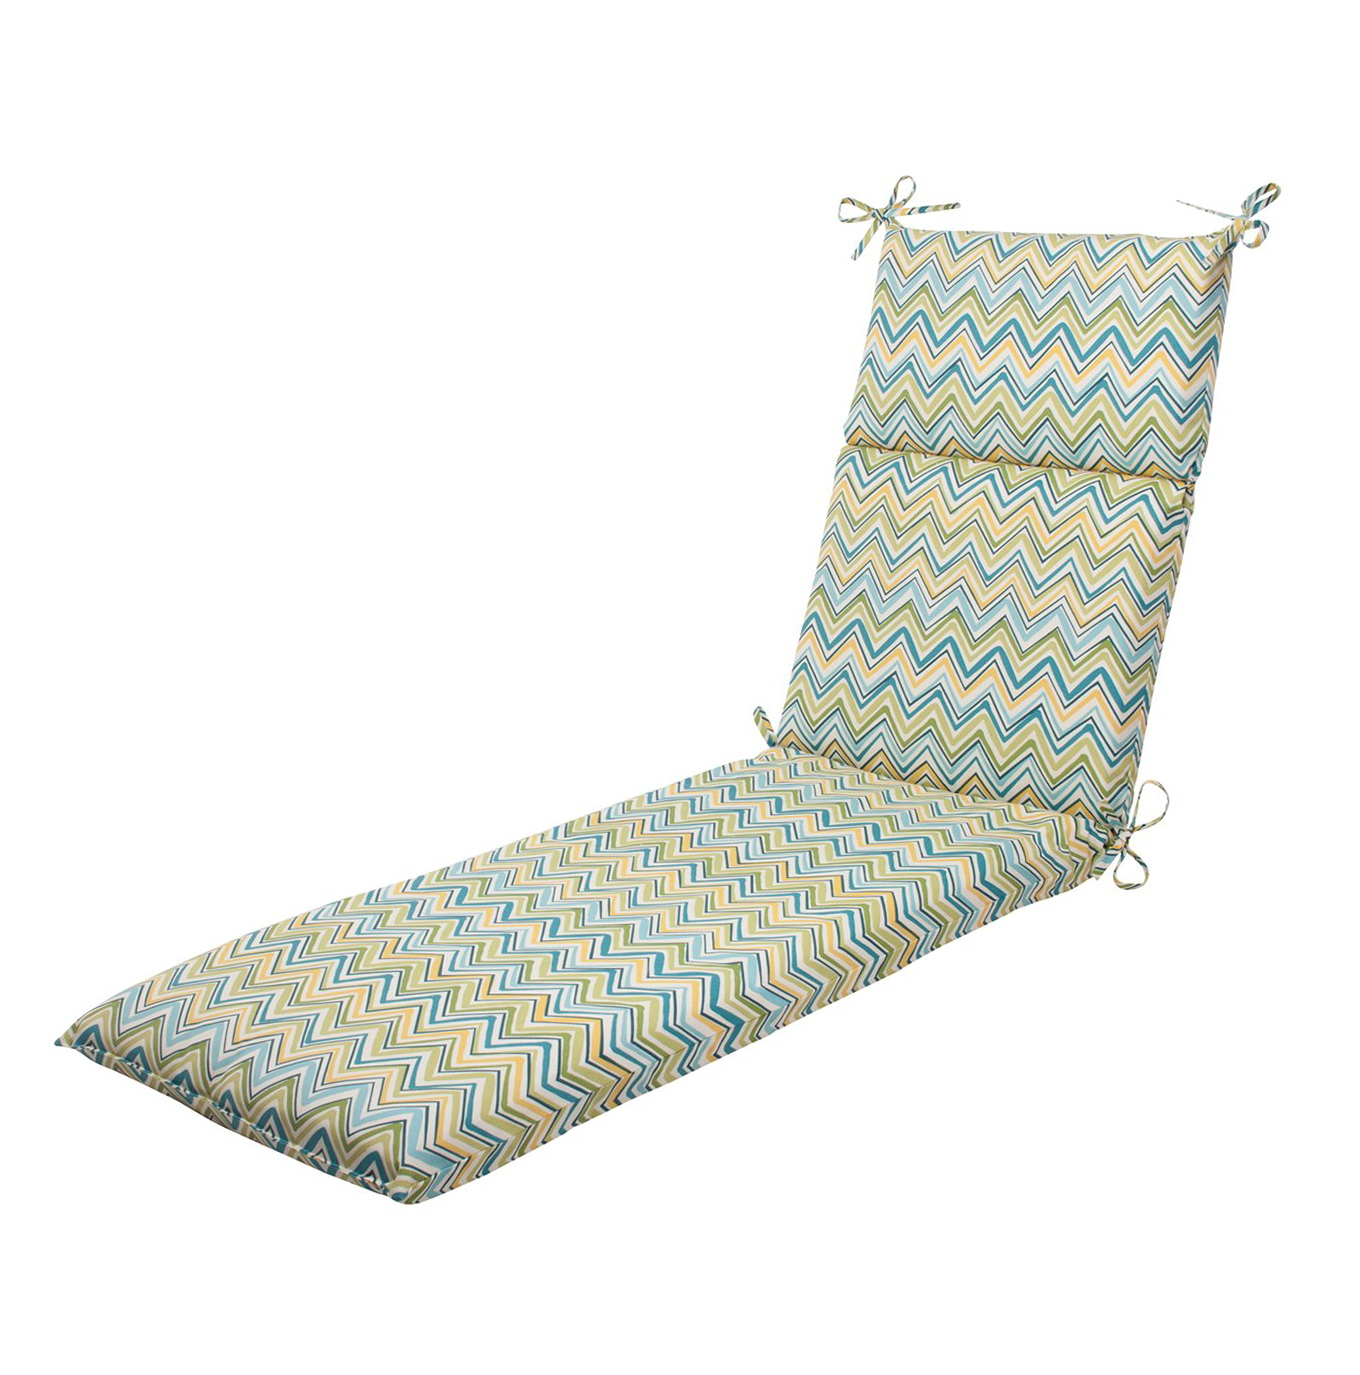 Chaise lounge outdoor cushions target home design ideas for Chaise cushions clearance